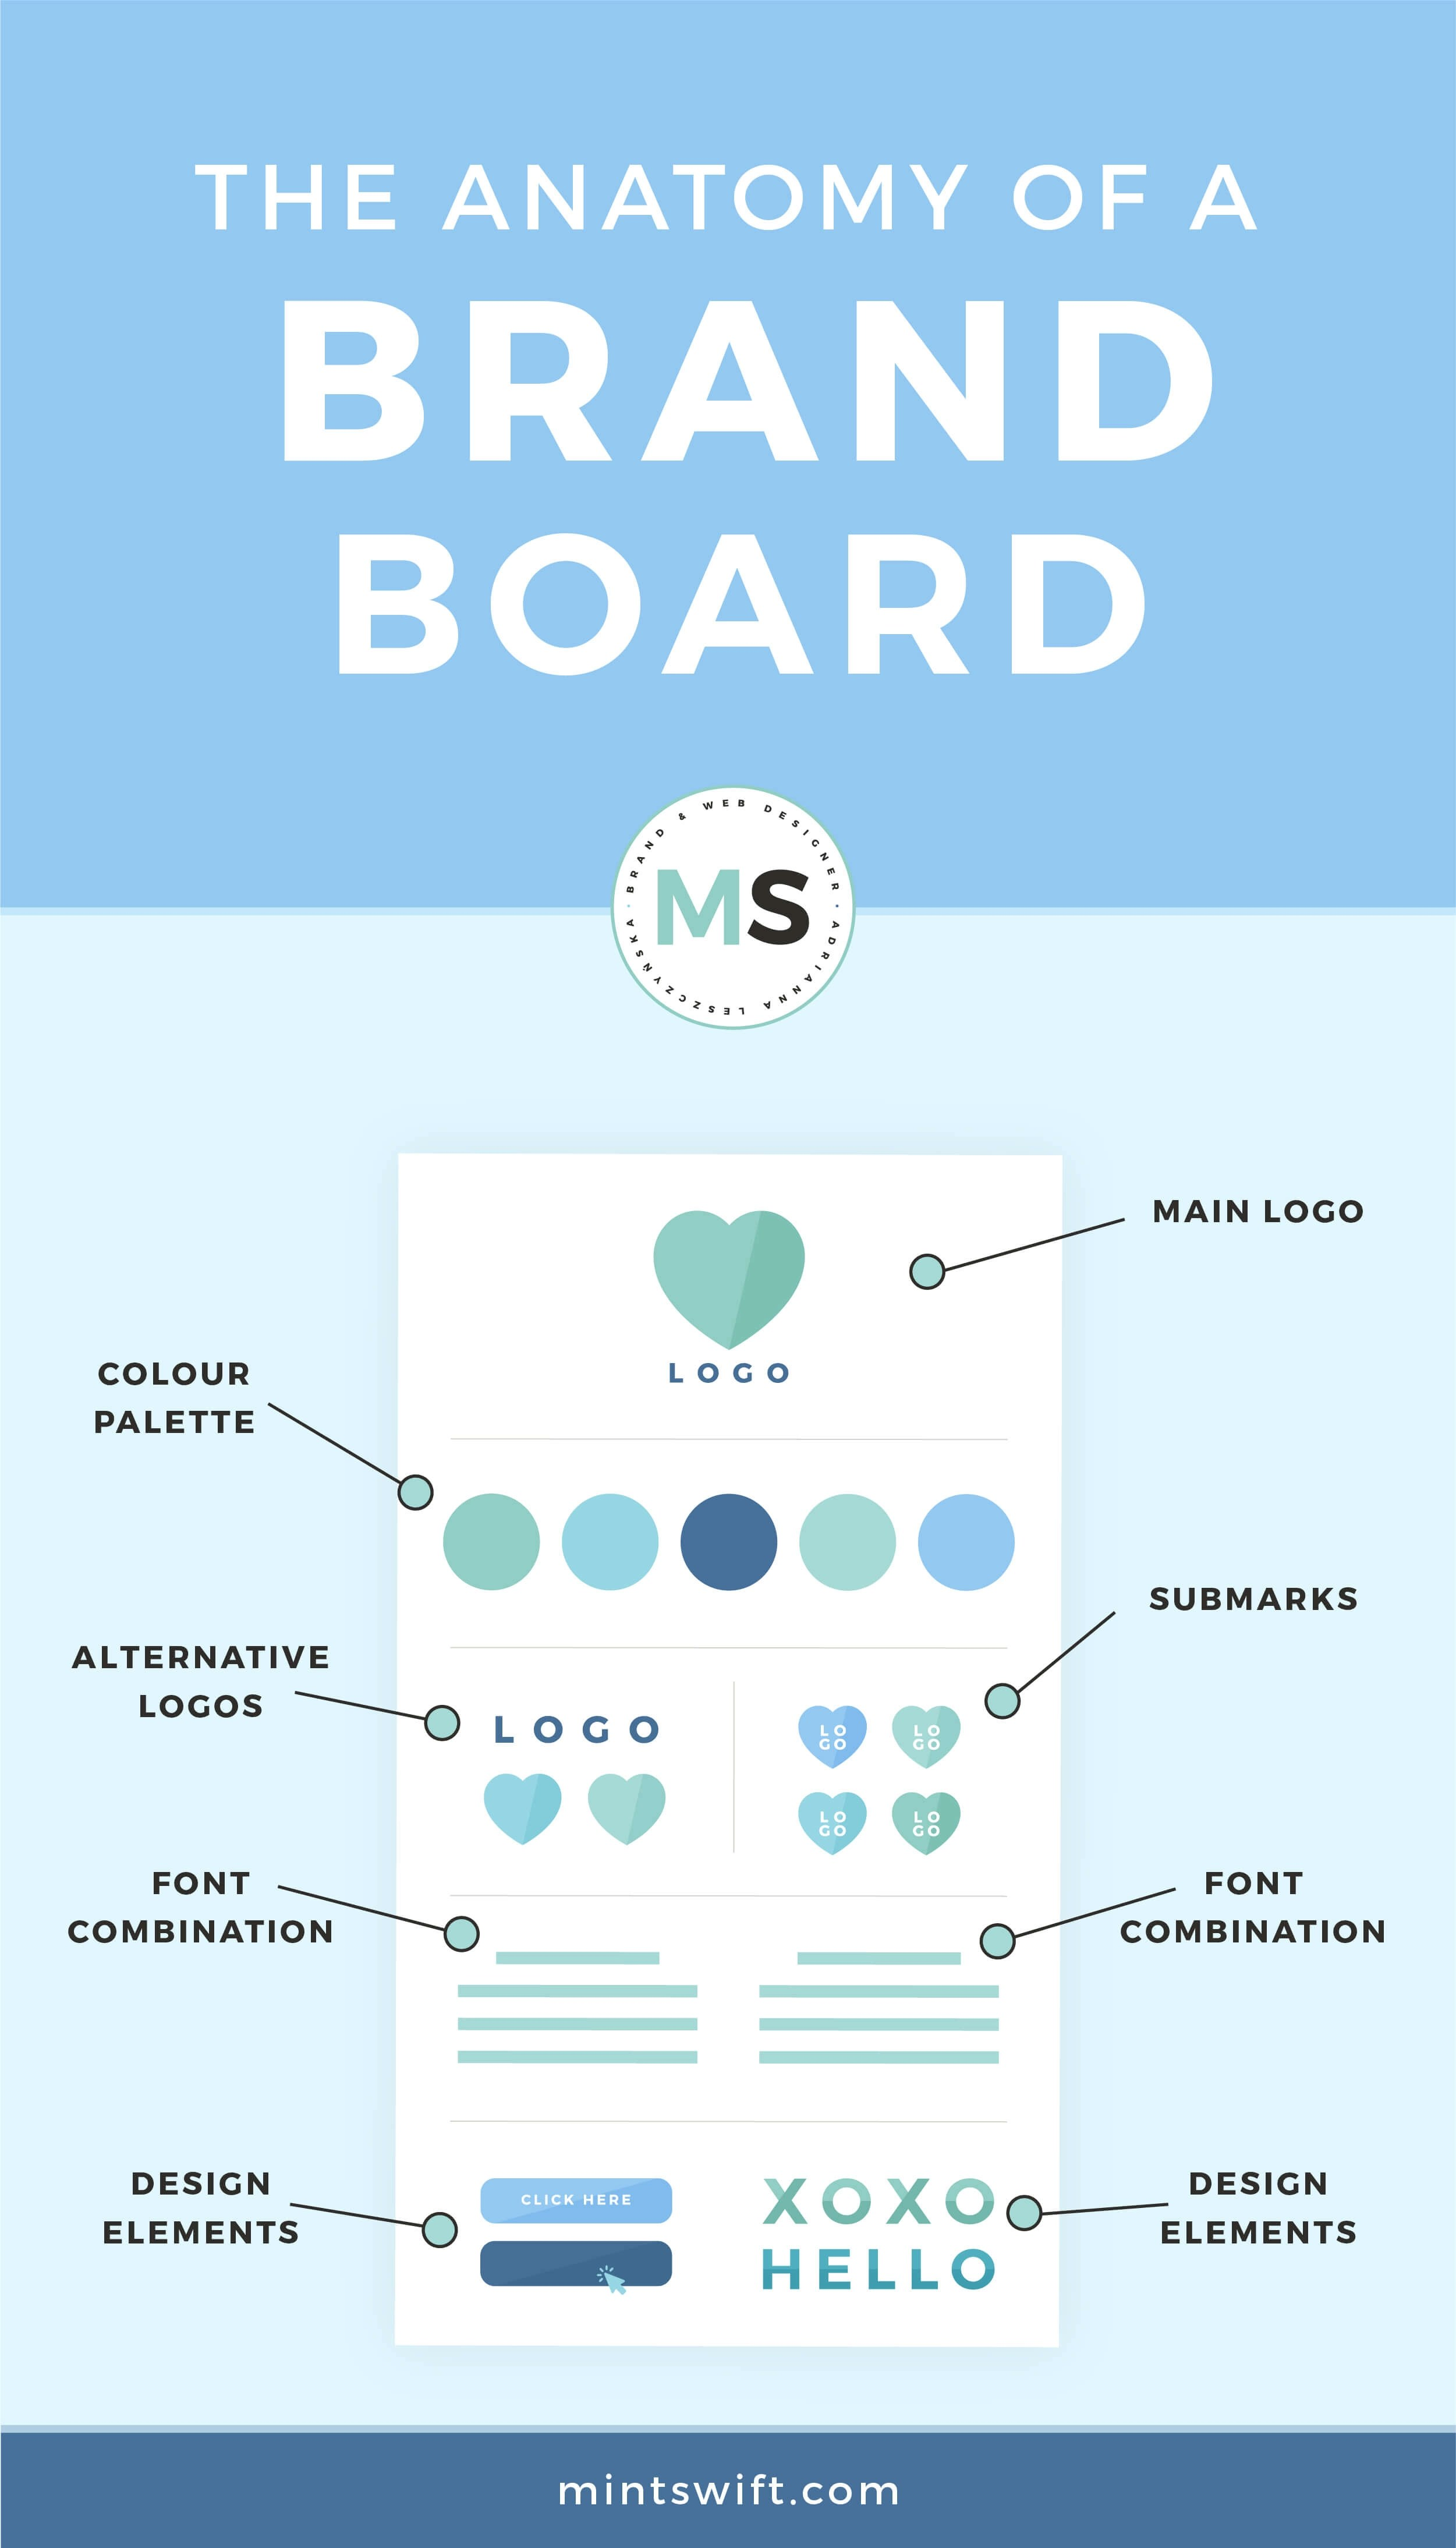 The Anatomy of a Brand Board - infographic - MintSwift